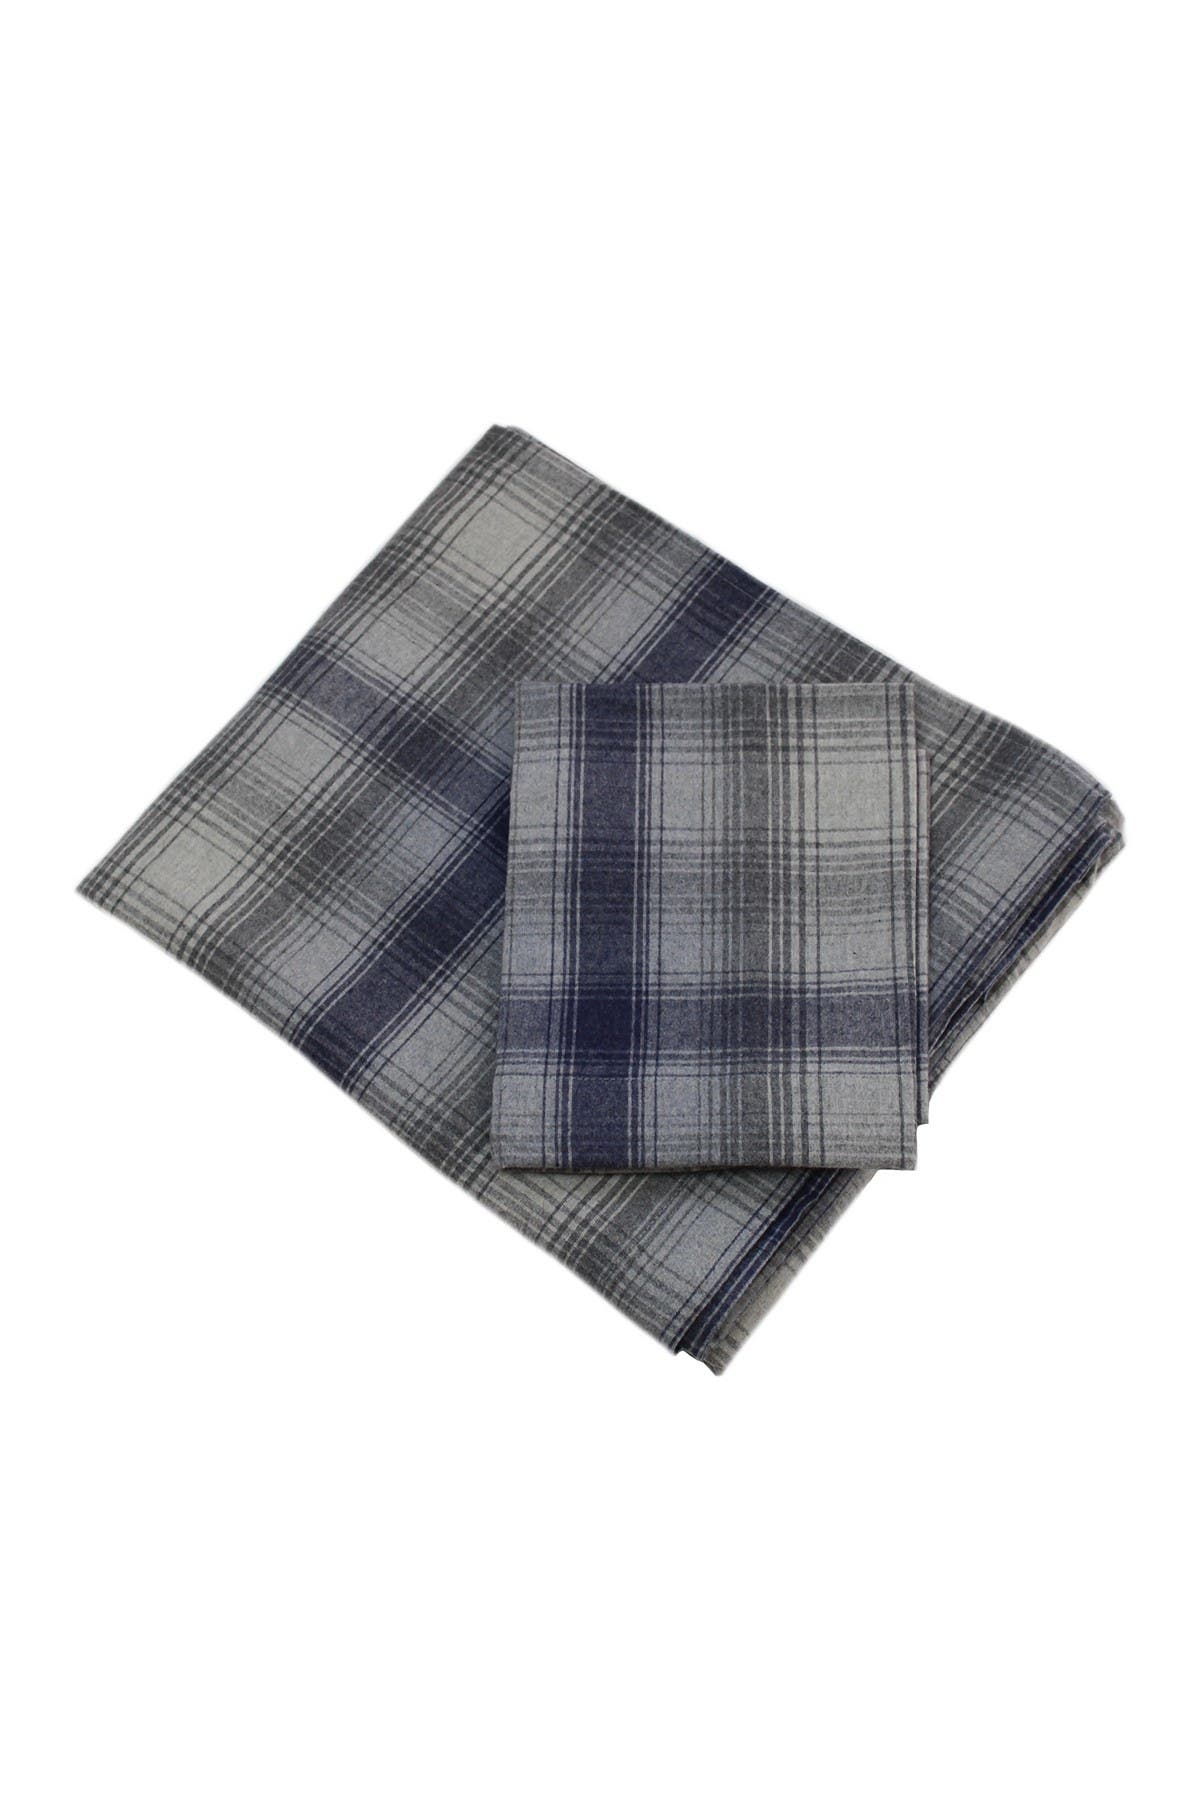 Image of Belle Epoque Flannel Sheet Set Blue Plaid - Twin